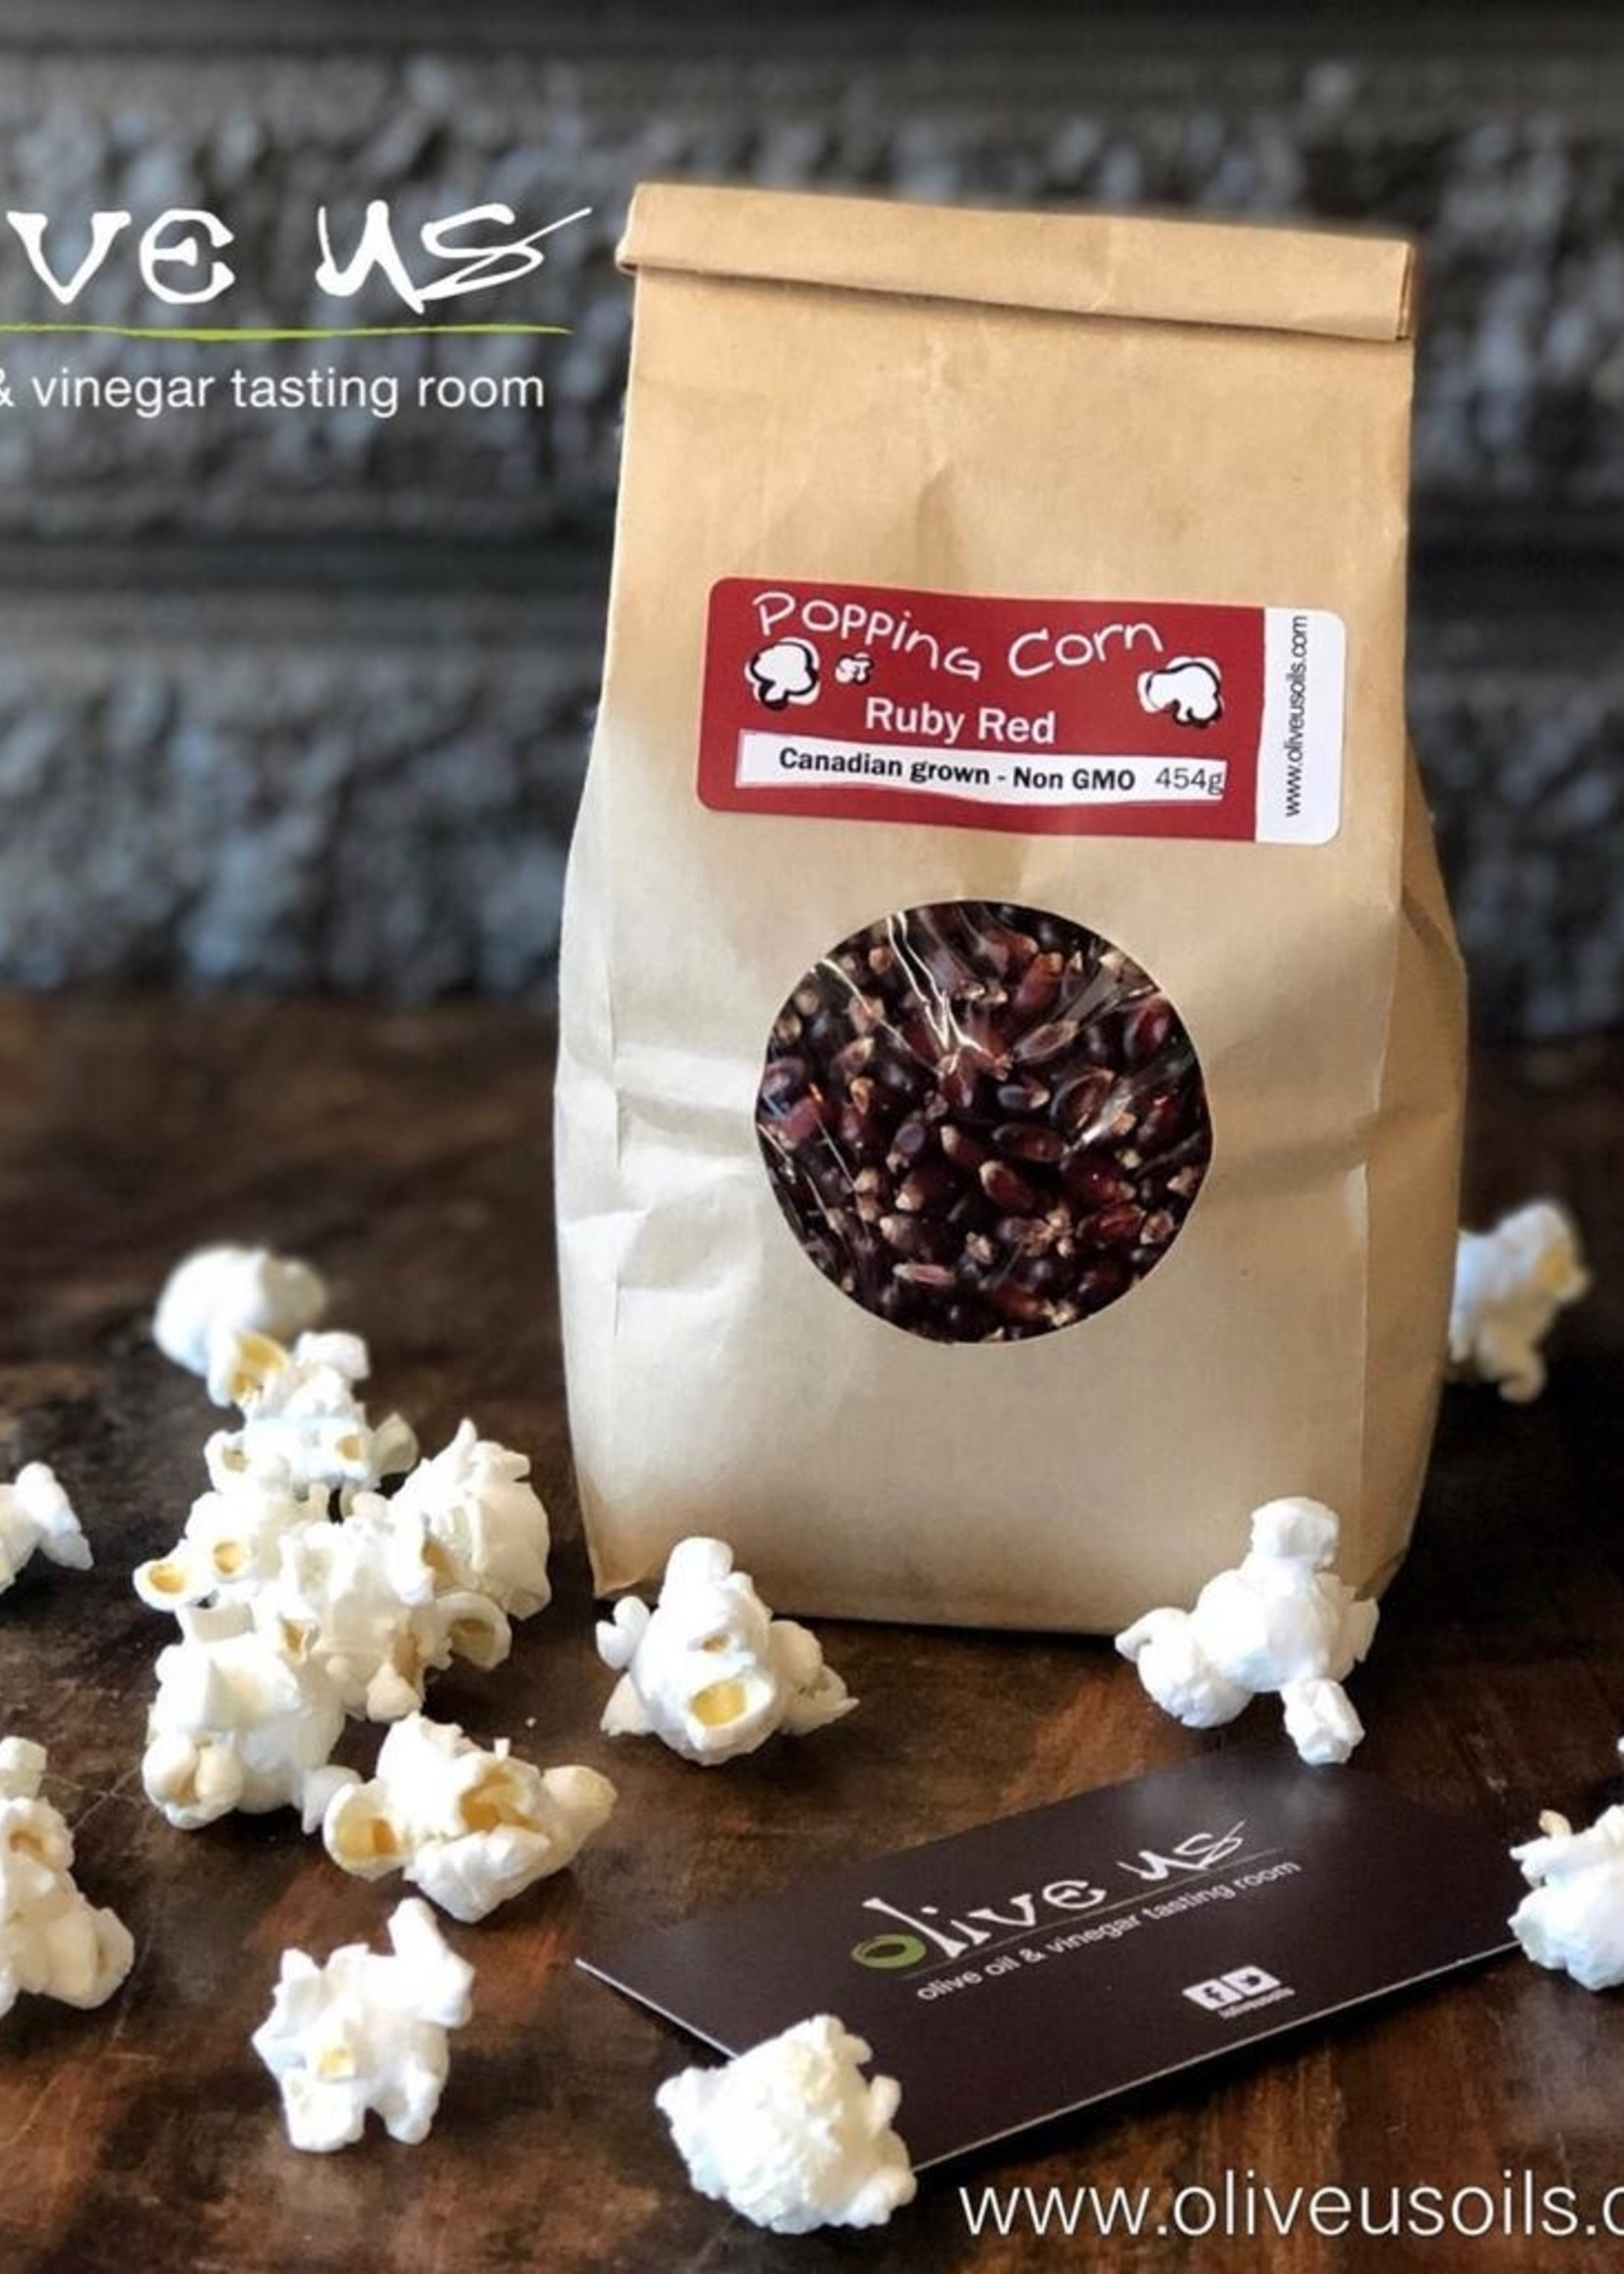 Olive Us Ruby Red Popping Corn 454g